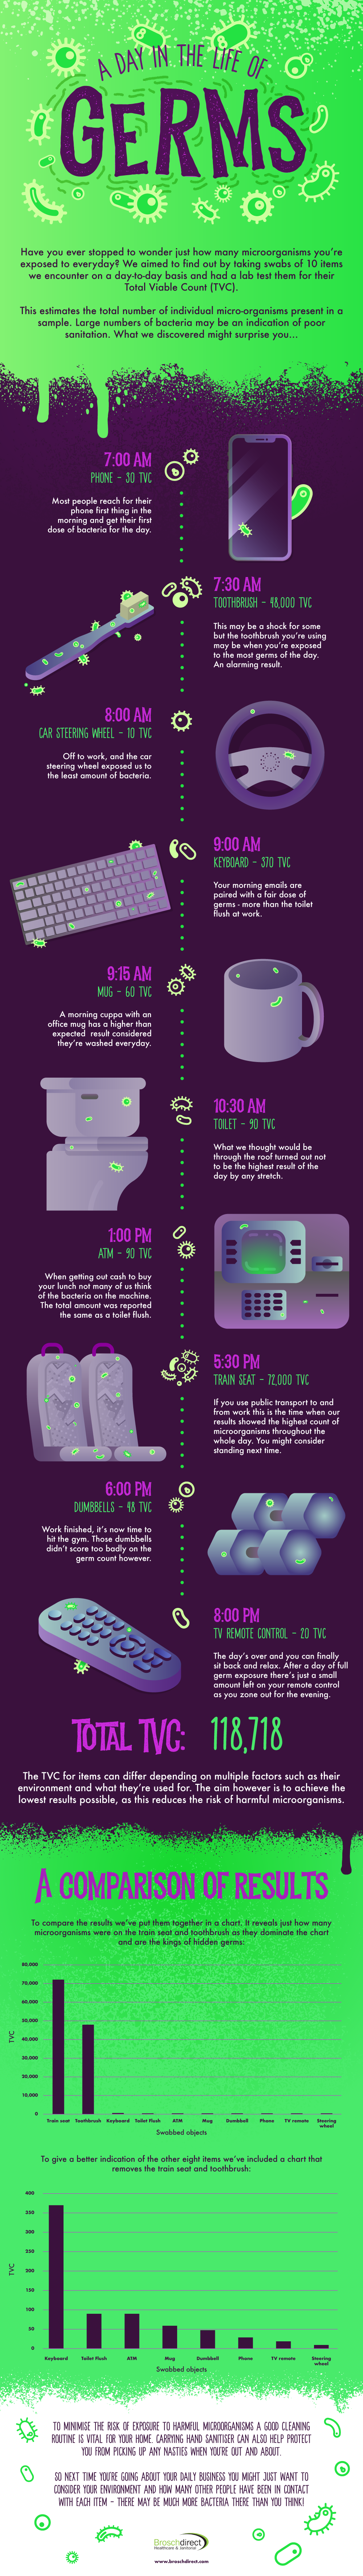 A-day-in-the-life-of-germs infographic